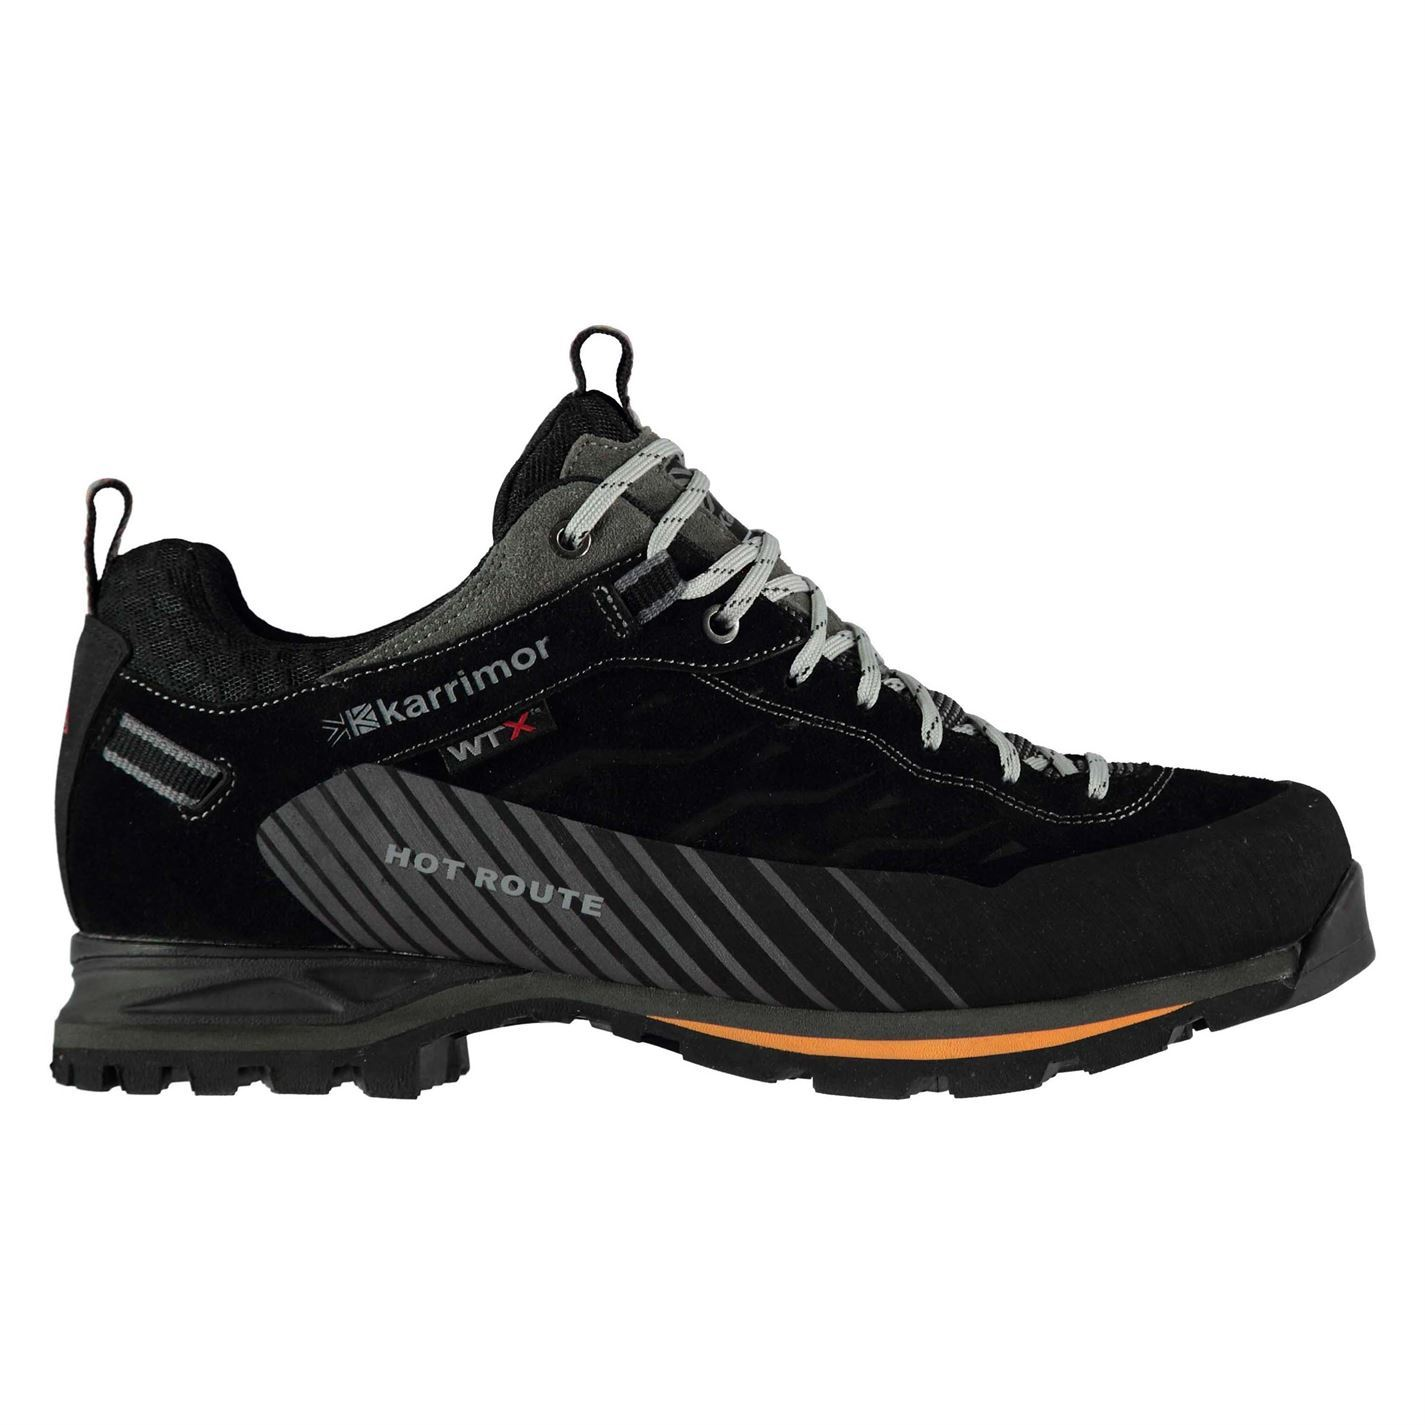 Karrimor  Uomo Hot Route WTX Walking Schuhes Waterproof Lace Up Breathable Leder